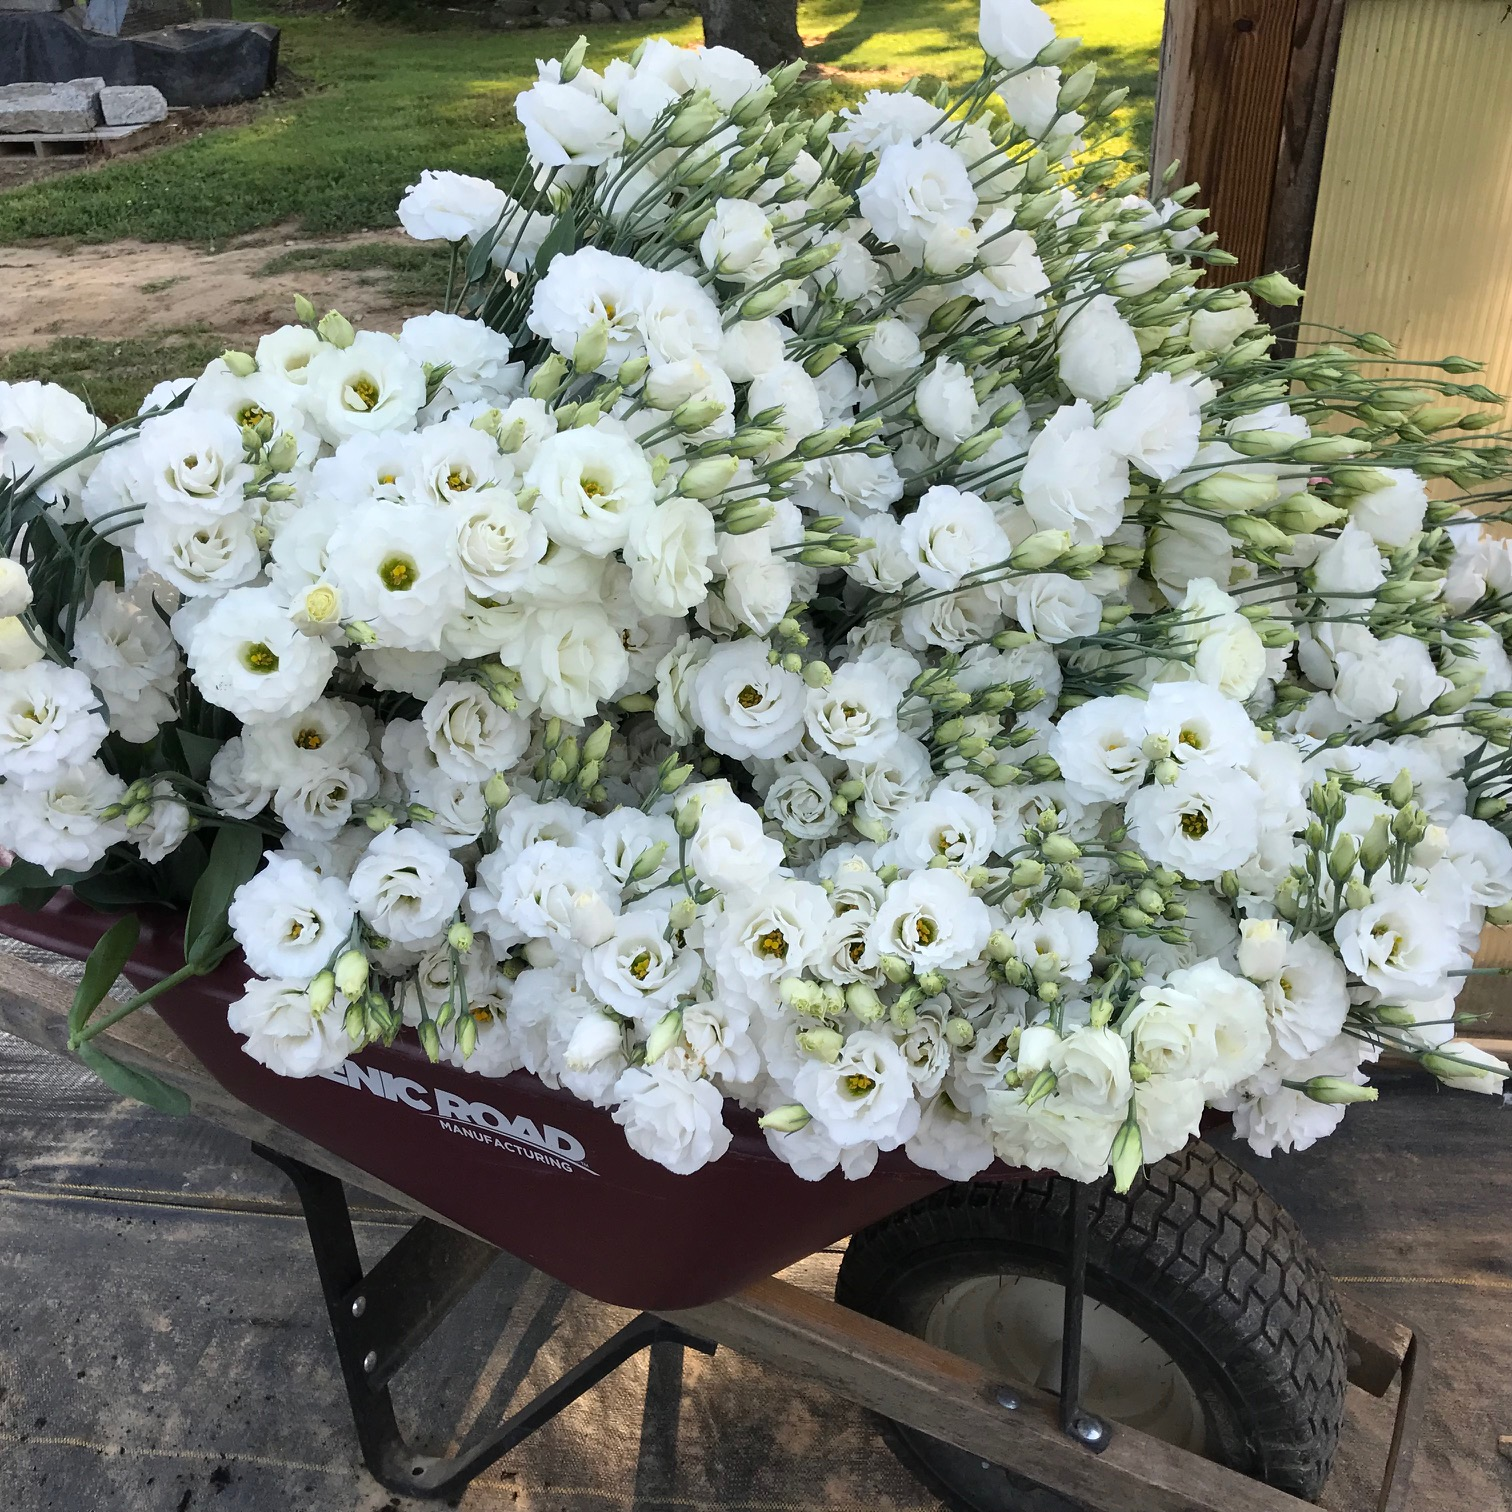 Wheelbarrow of lisianthus